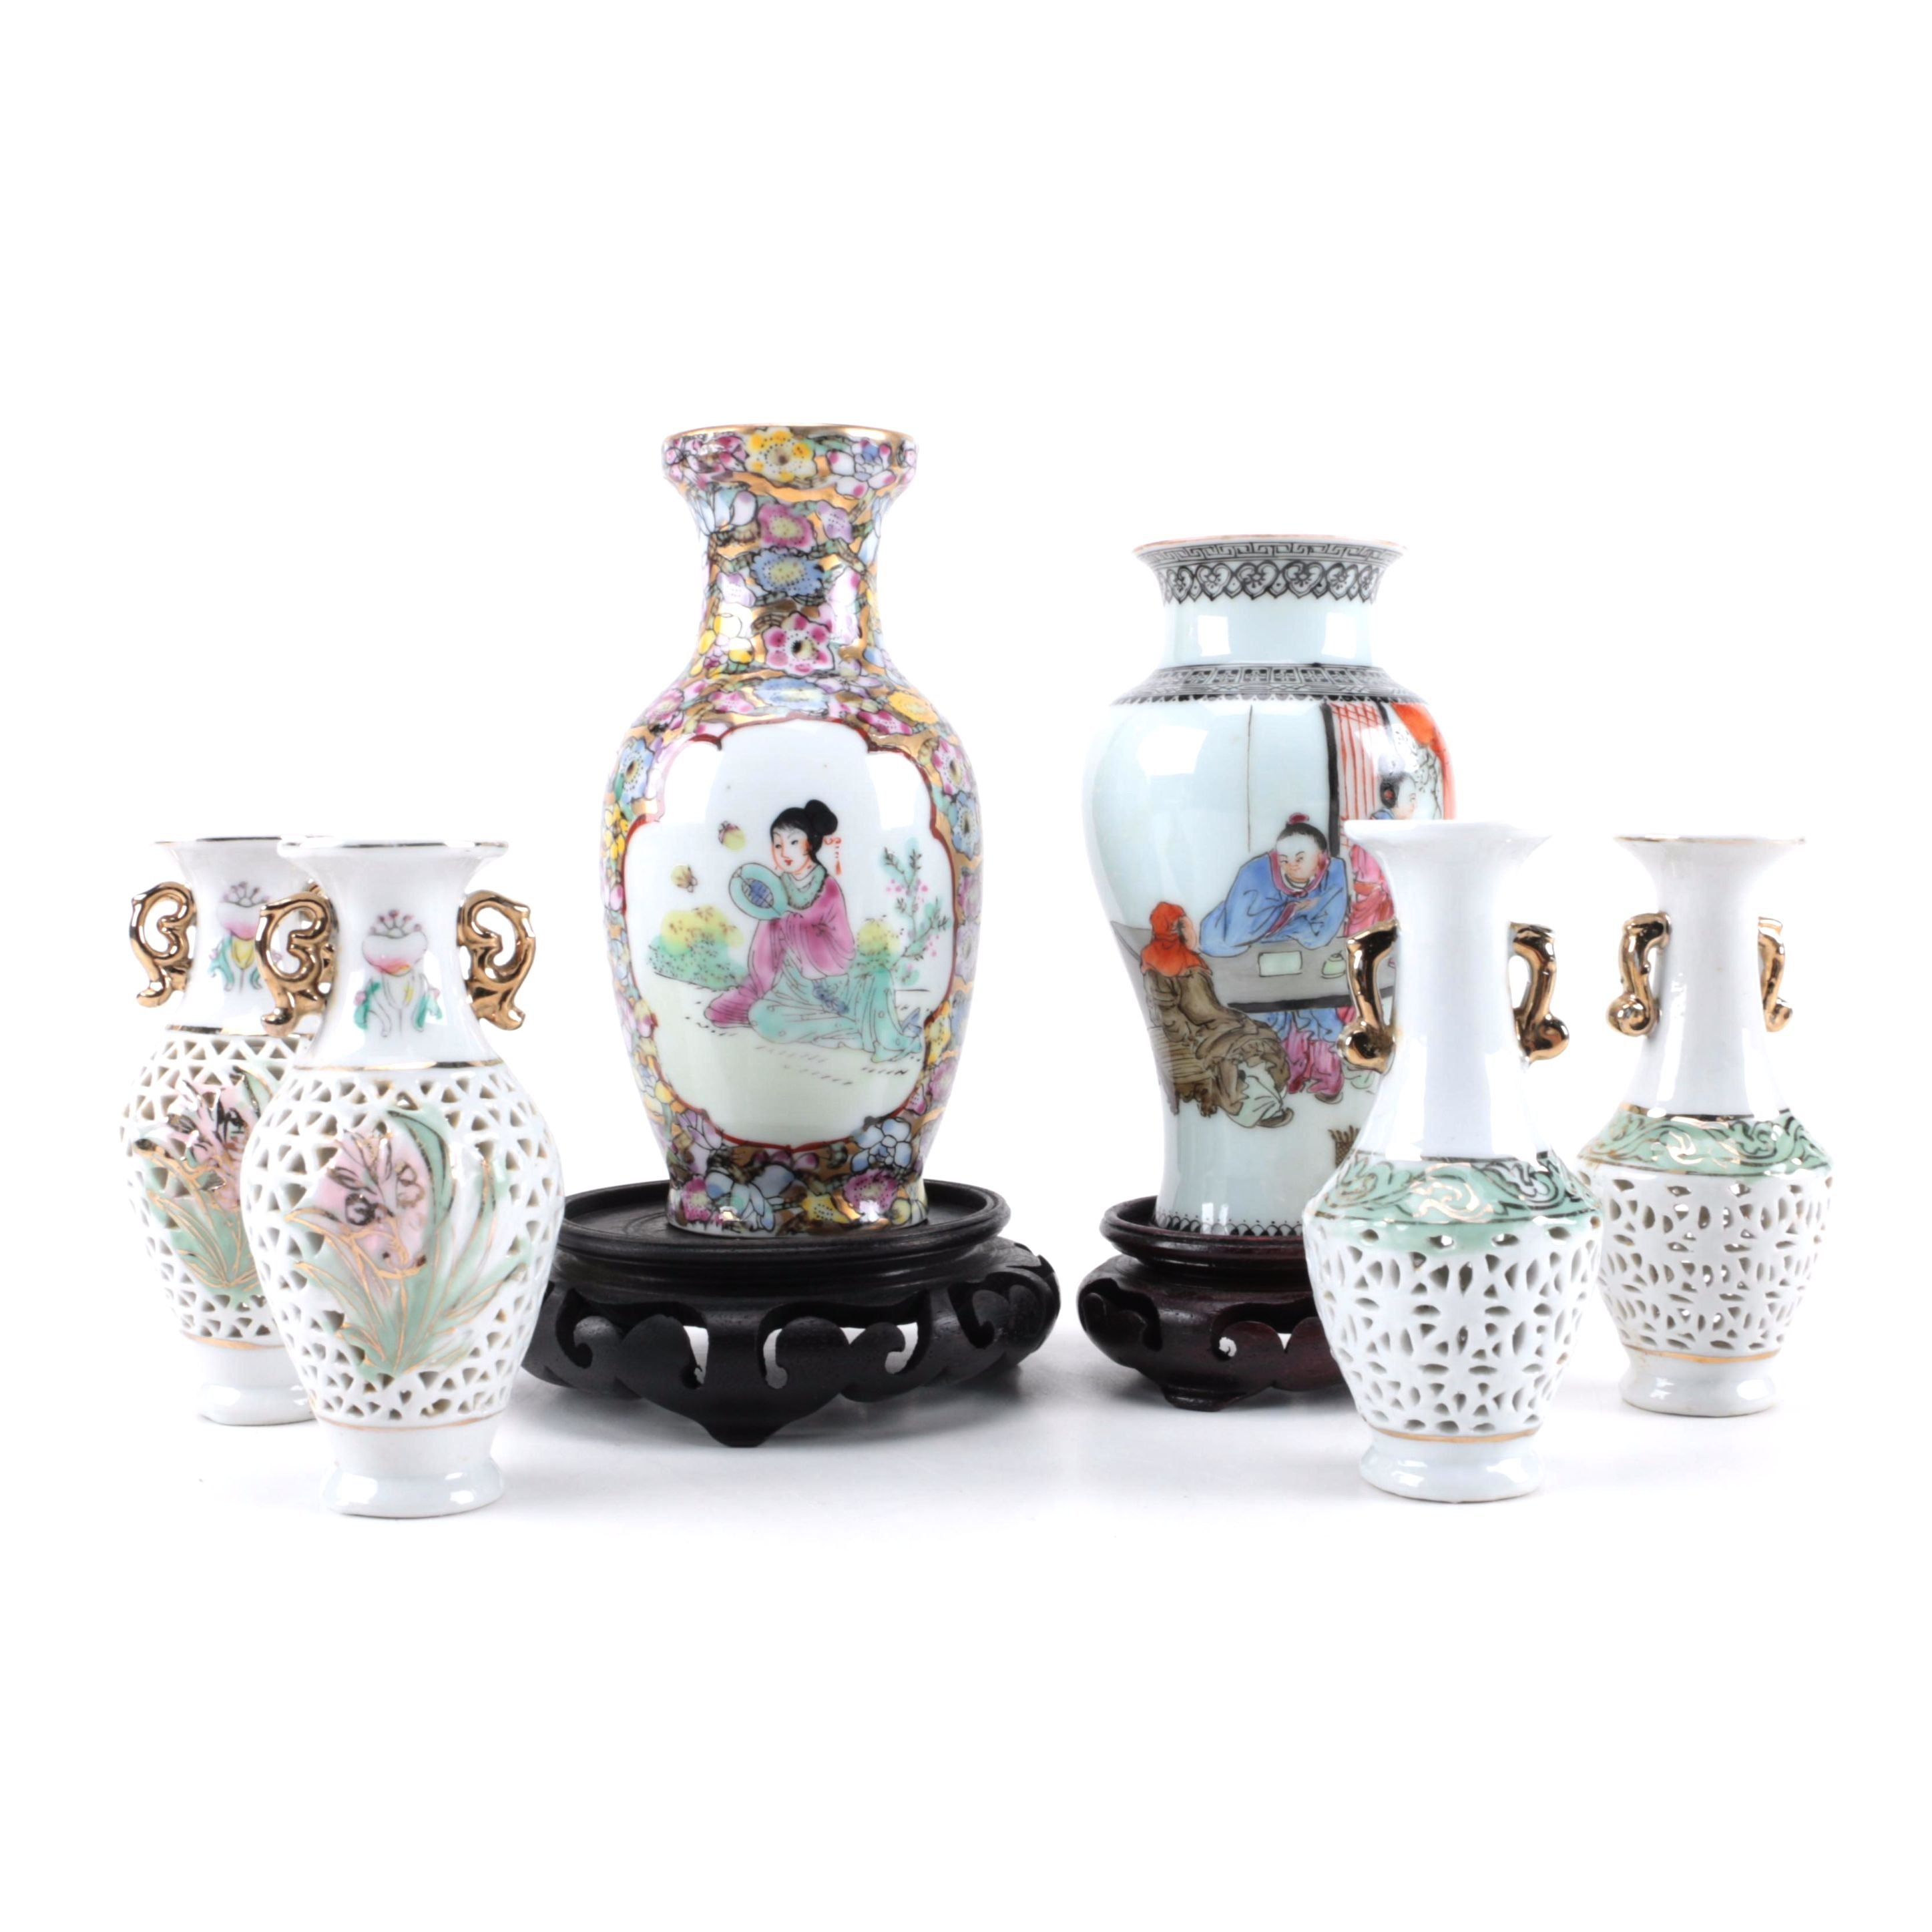 Selection of Multi-Colored Chinese Ceramic and Porcelain Vases